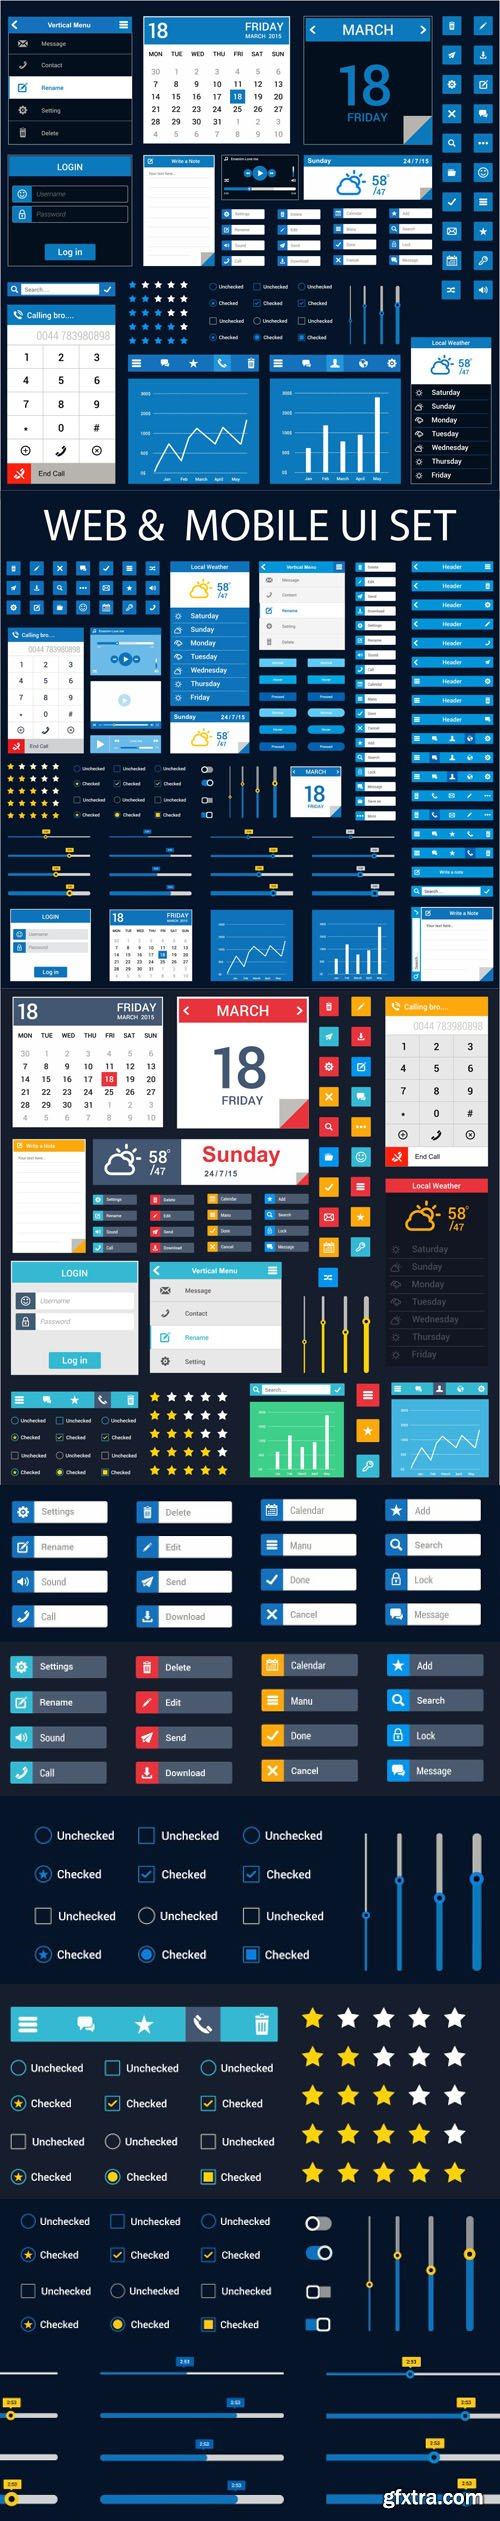 Web & Mobile UI KIT Vector Templates Collection